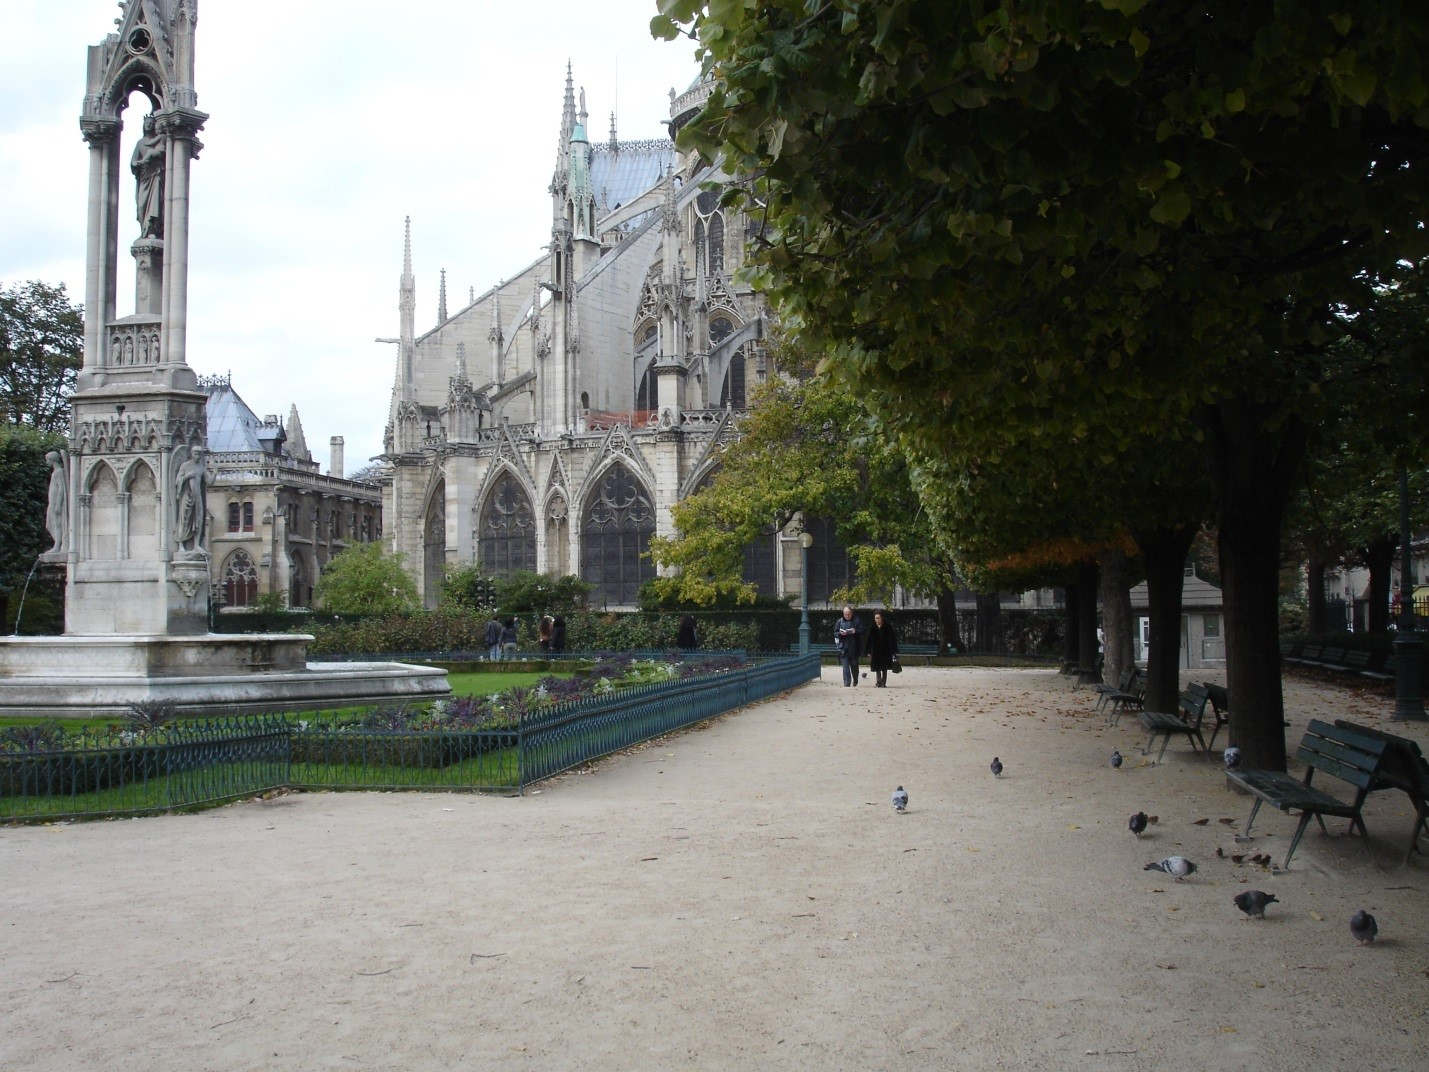 This is the back side of Notre Dame, one of my favorite quiet spots in Paris - smack in the middle of the city. My photo.